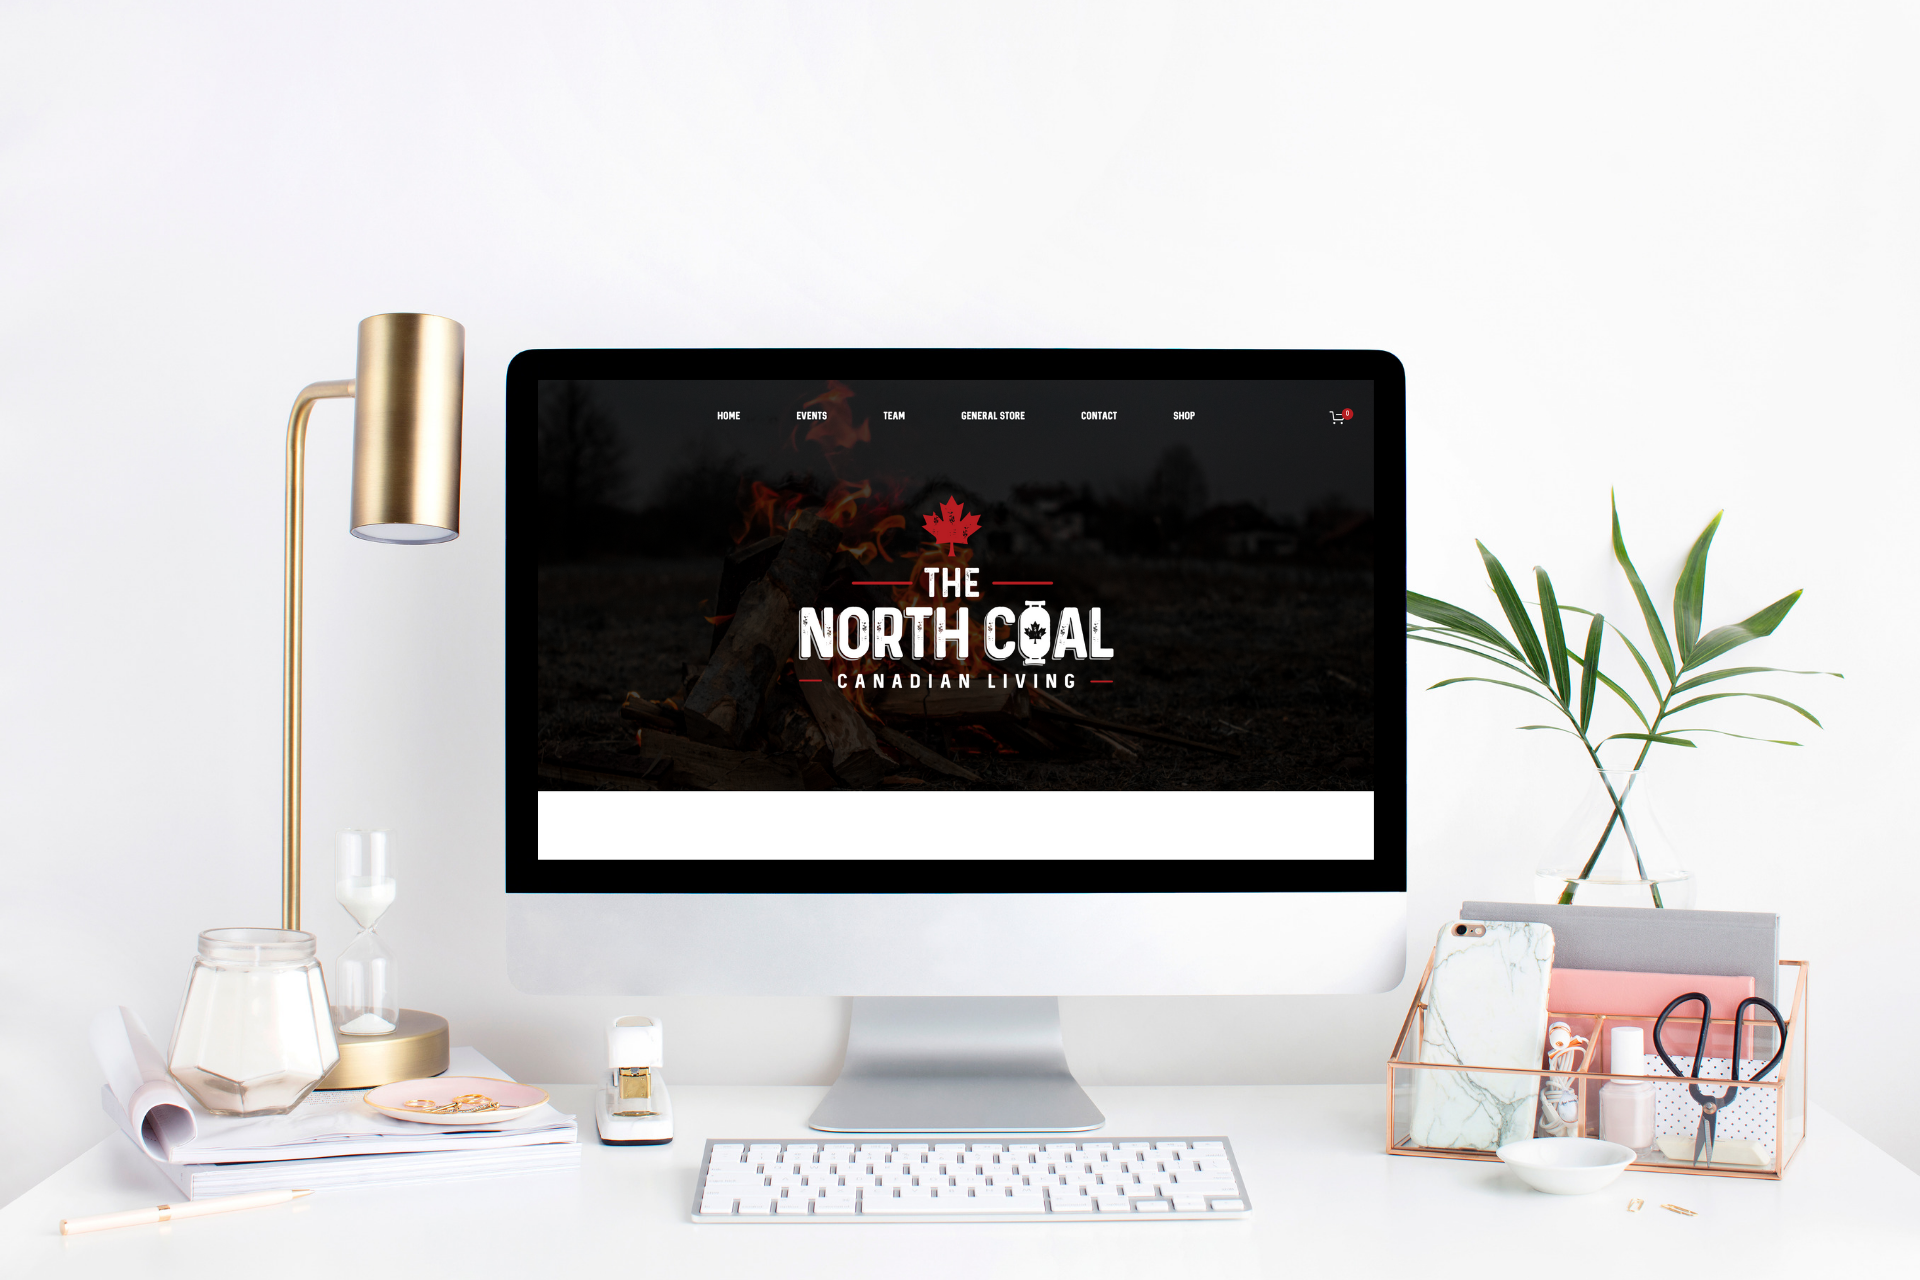 "The North Coal - What they sell: Corporate BBQs and catering and a merchandise shop filled with swag and homemade sauces, plus a complete festival/vendor setupChallenge: Help show off a re-brand while also building a platform that can grow with the business.Solution: The North Coal is a fast-growing catering company turned full on Canadian lifestyle brand and their website had to keep up. The first phase of their project was to move the site they'd started themselves to Squarespace and give it an entirely fresh look. Then came event menus for large-scale corporate BBQs followed by a complete section dedicated to festivals and events. There's an online merchandise shop that will soon be followed by the launch of a retail pop-up and full on coworking and event space. The site will be a hub for all things North Coal and the perfect example of how working in stages can take a big project and make it super doable!Feedback: ""Super happy with the work Kristine has done for us! We were set on doing all of our web design ourselves but realized very quickly that having an expert on board makes a huge difference! Her work gave us an image and brand that we're proud of and has allowed my team to focus on growing the business. Projects big or small, make the investment - it's worth it!"""